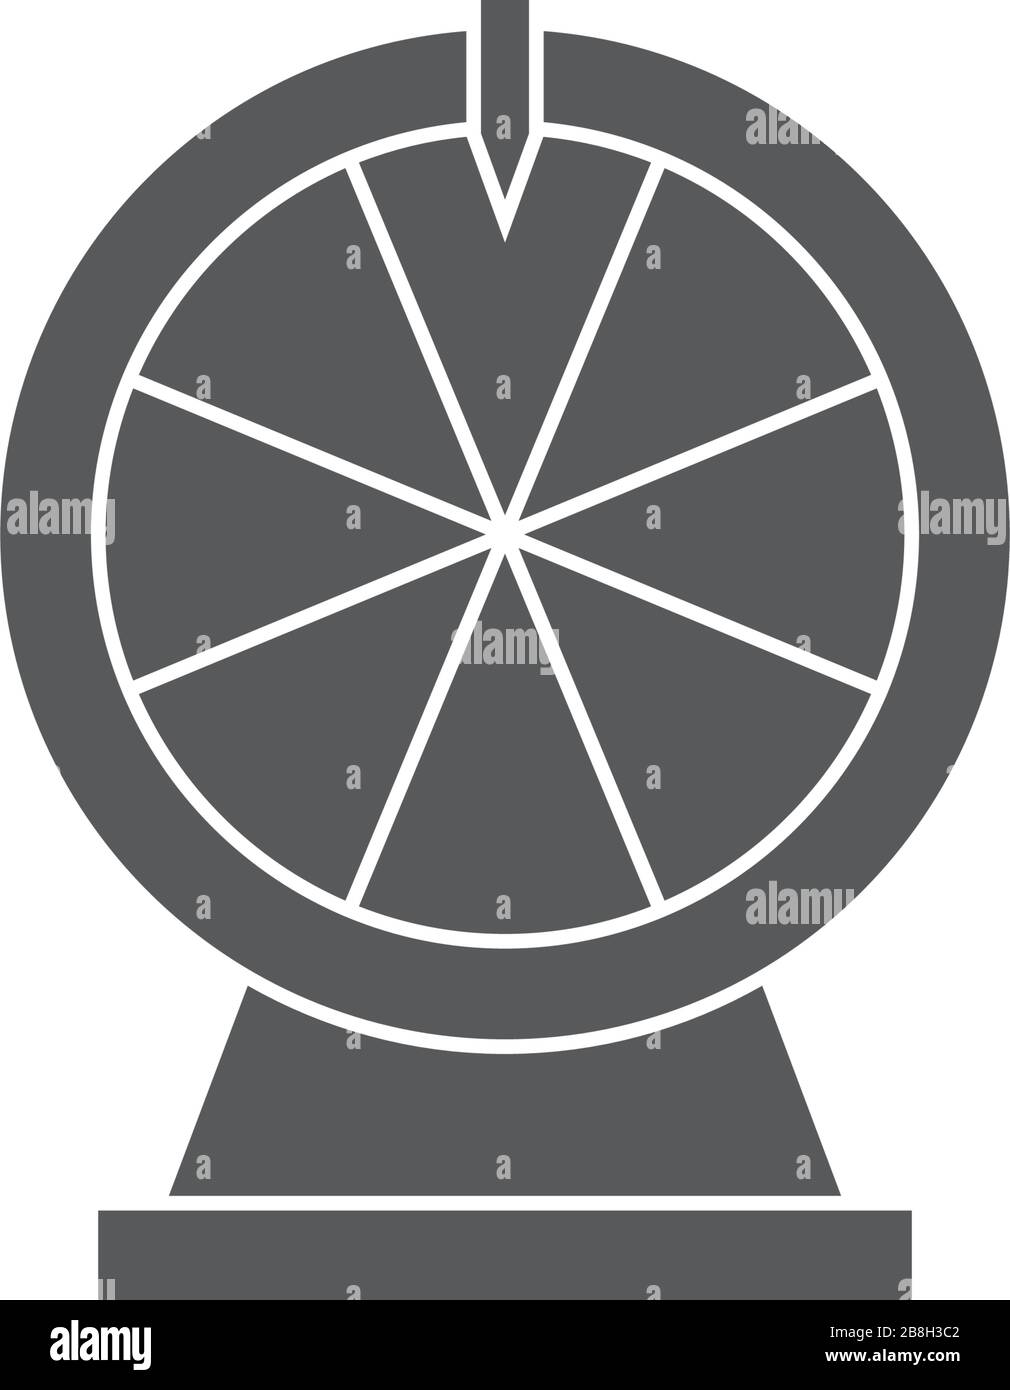 Wheel Of Fortune Vector Icon Isolated On White Background Stock Vector Image Art Alamy